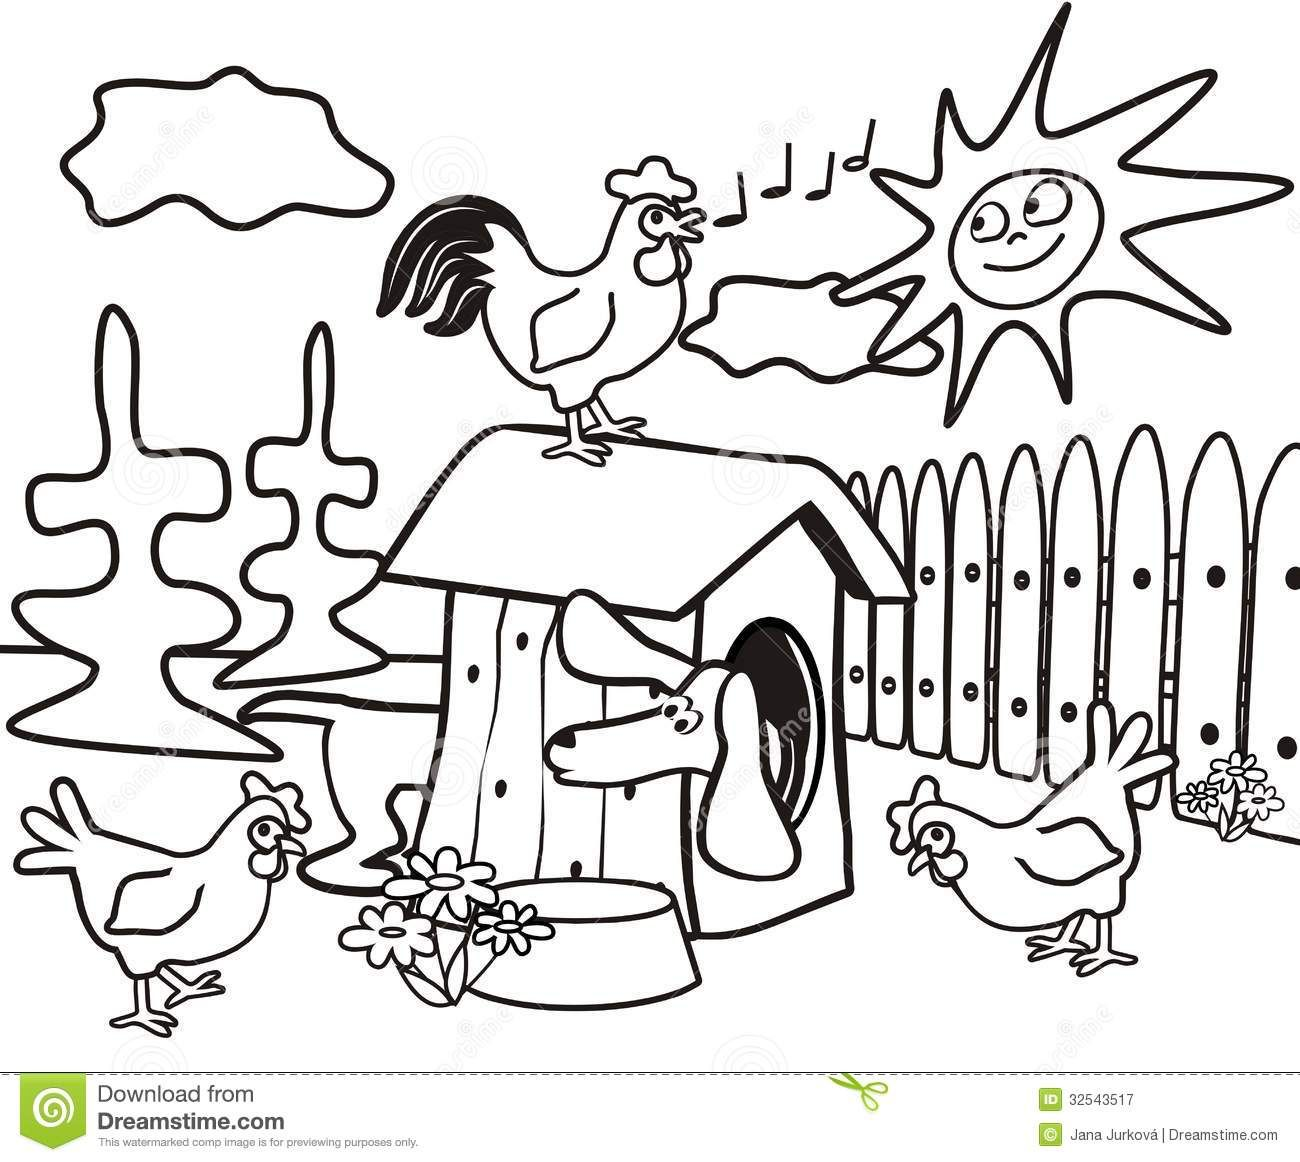 Dachshund Coloring Book Kids Dog Cock Hens 32543517